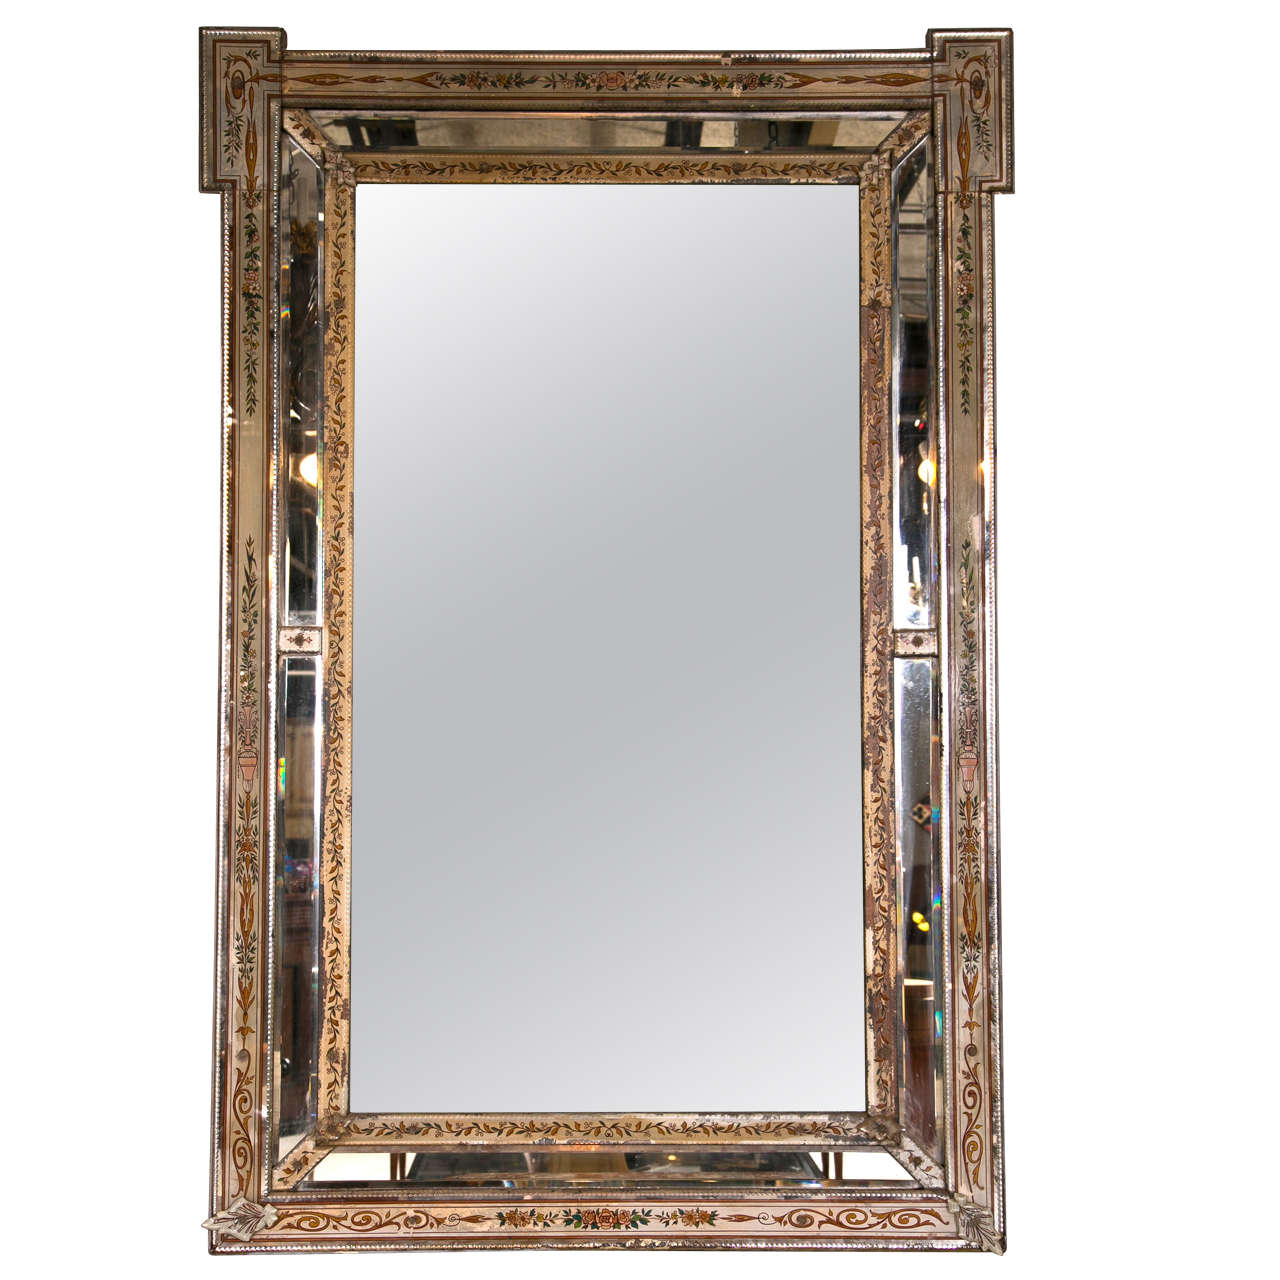 Venetian Reversed Painted Mirror Framed Mirror For Sale at 1stdibs